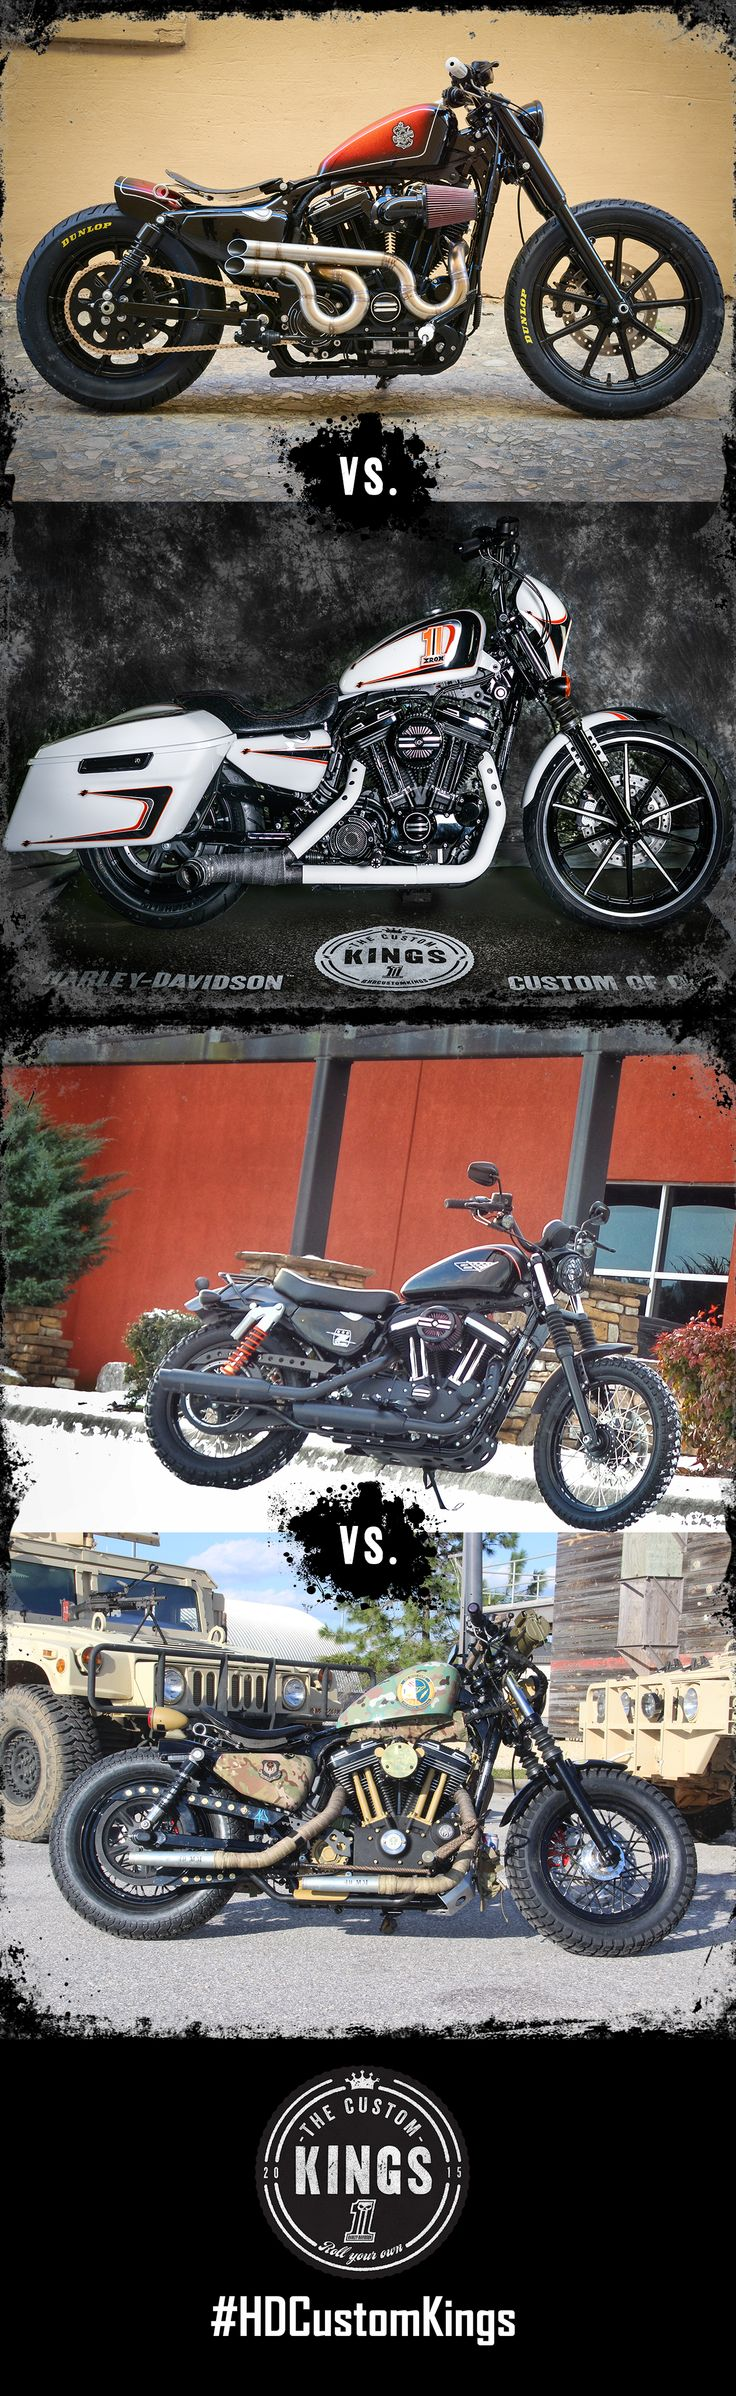 Round two of the #HDCustomKings Sportster competition is underway. Who will win the crown? Vote daily! | Harley-Davidson #HDCustomKings Southeast Region